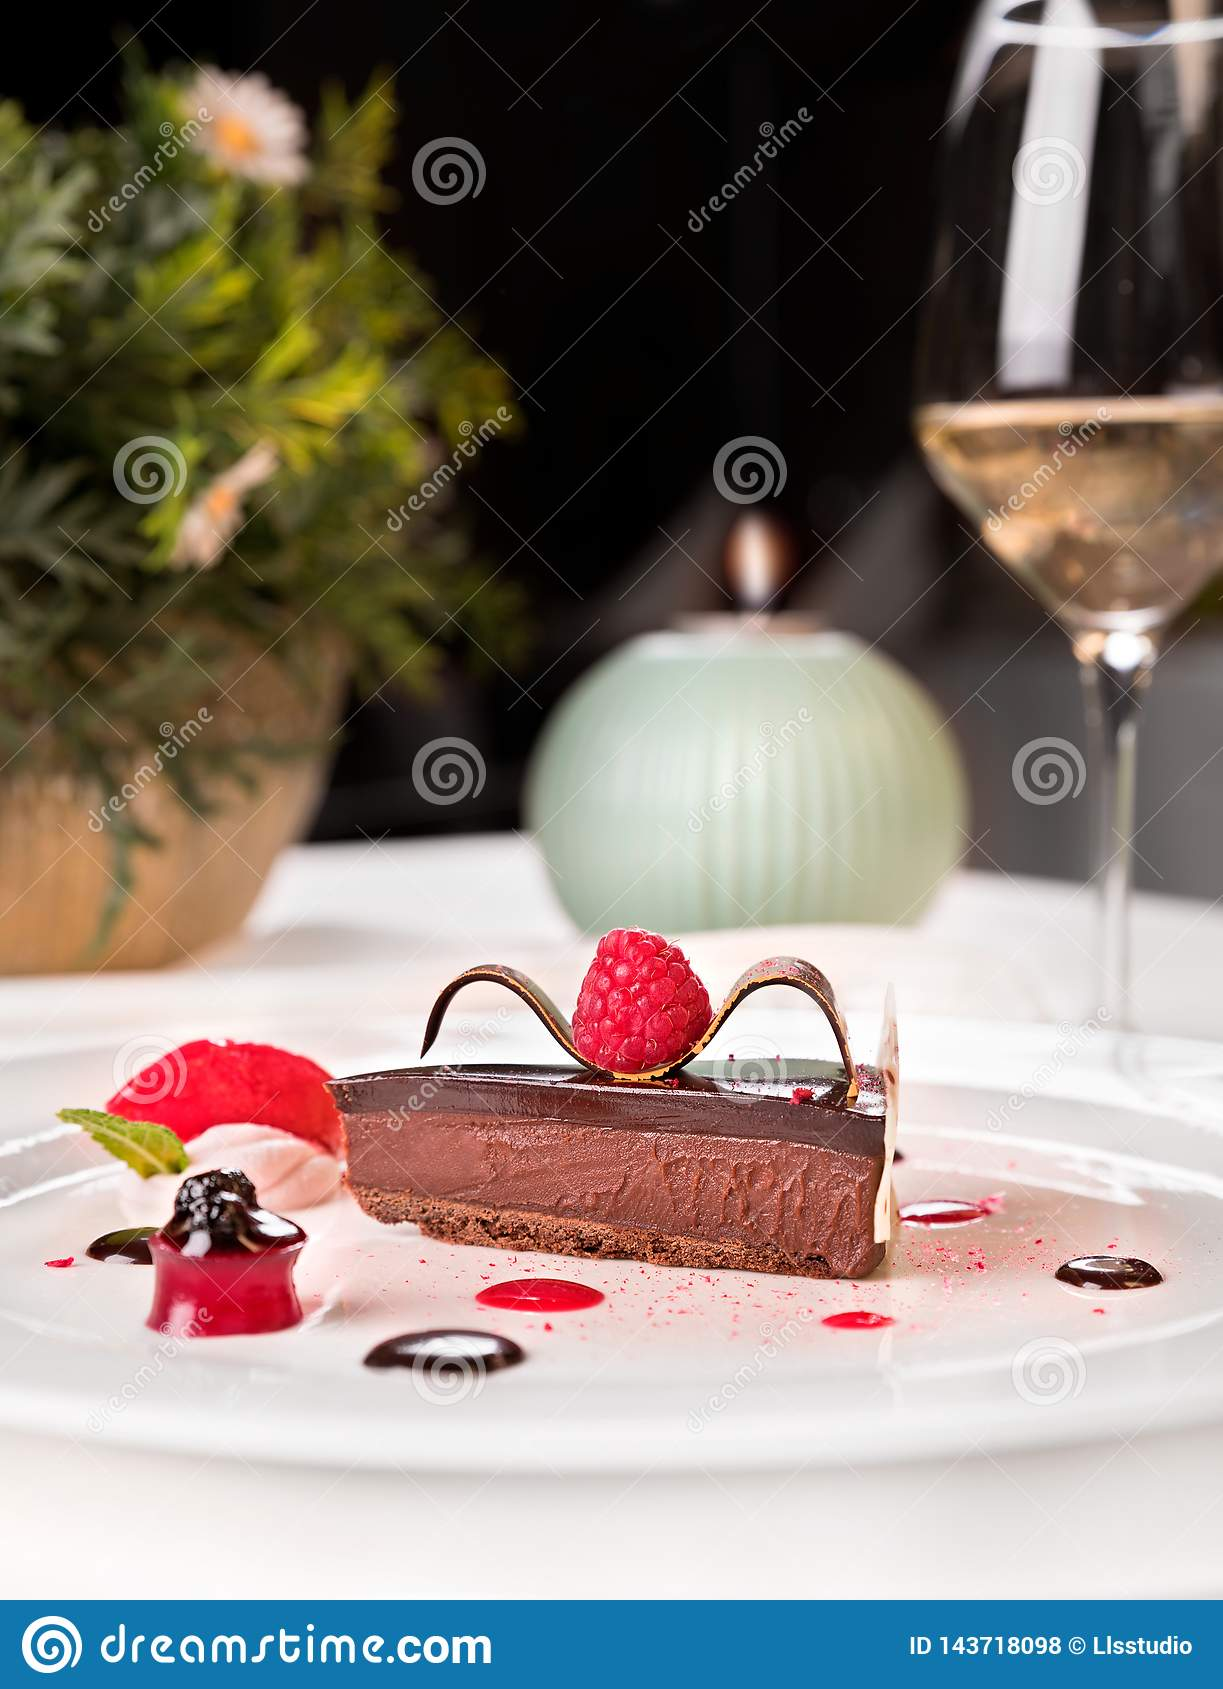 Chocolate and raspberries palette, served in a white plate